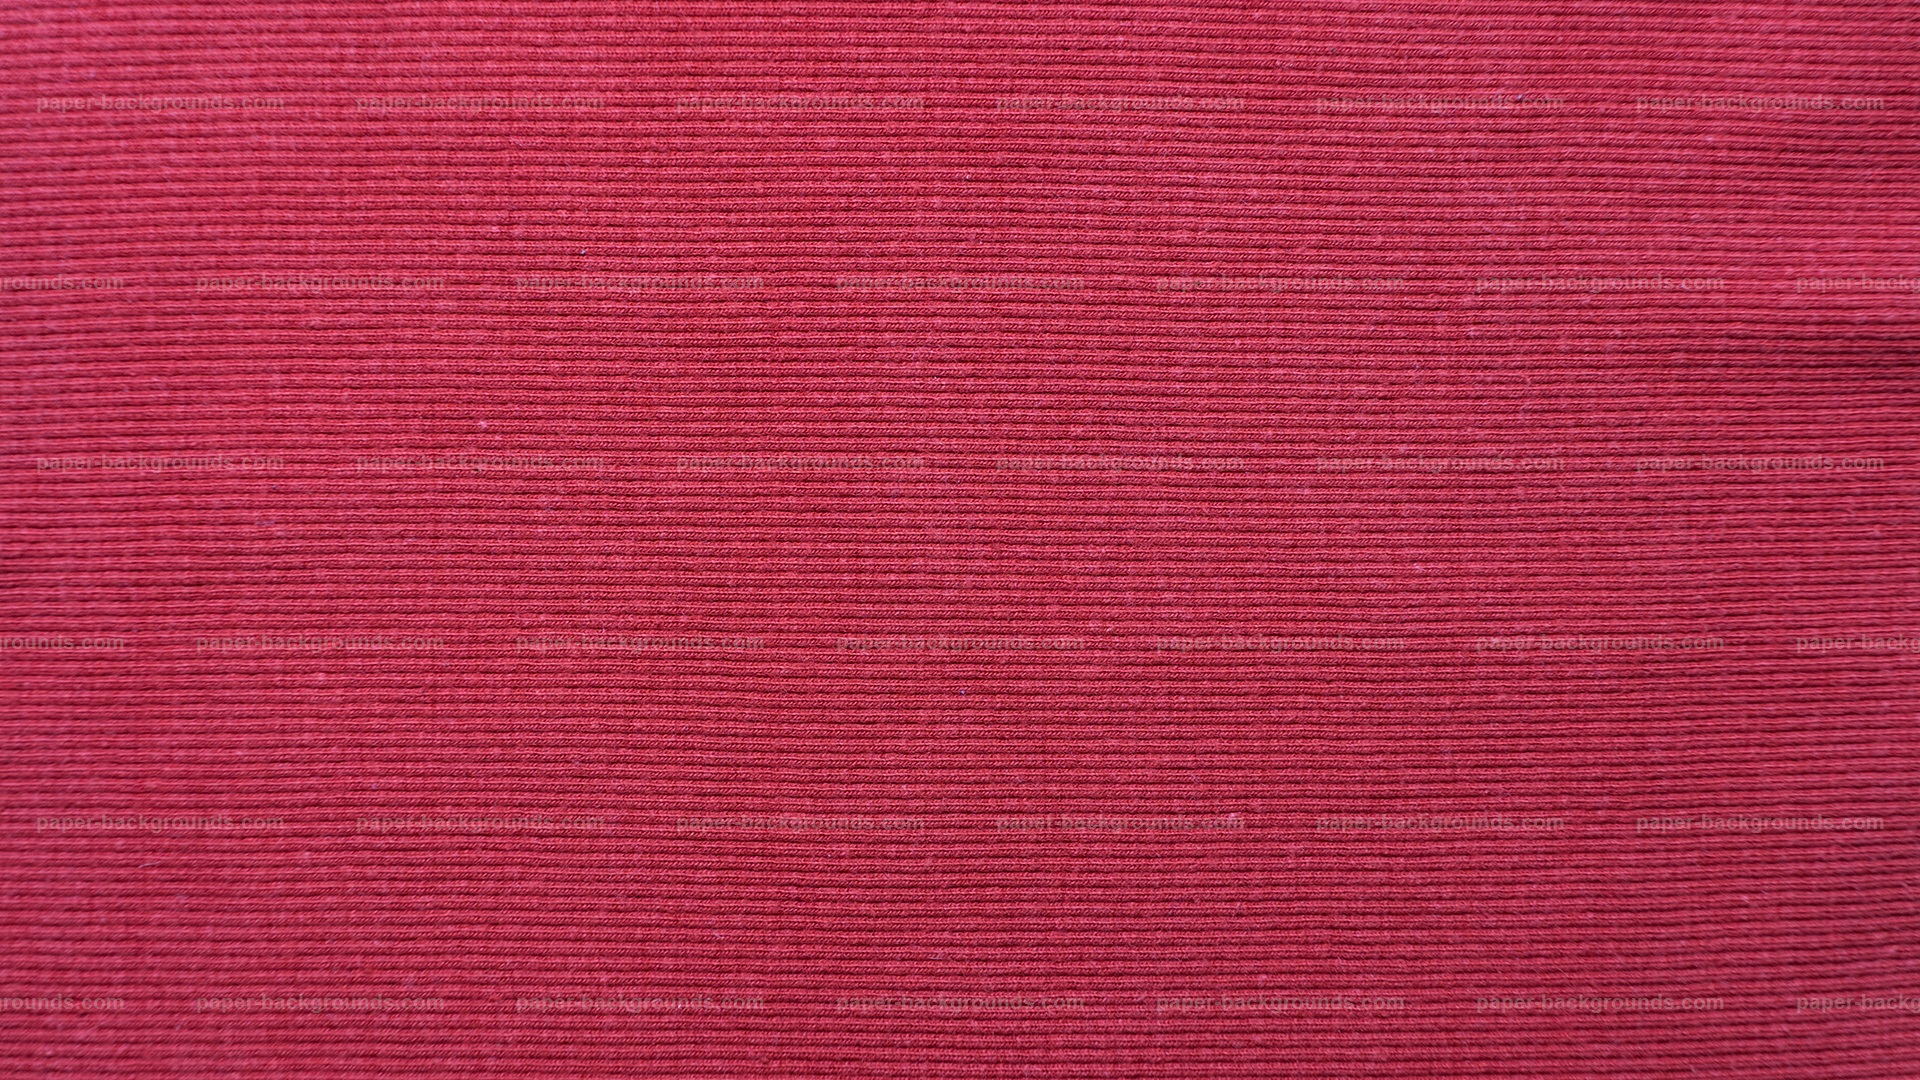 Red Fabric Material Texture HD 1920 x 1080p